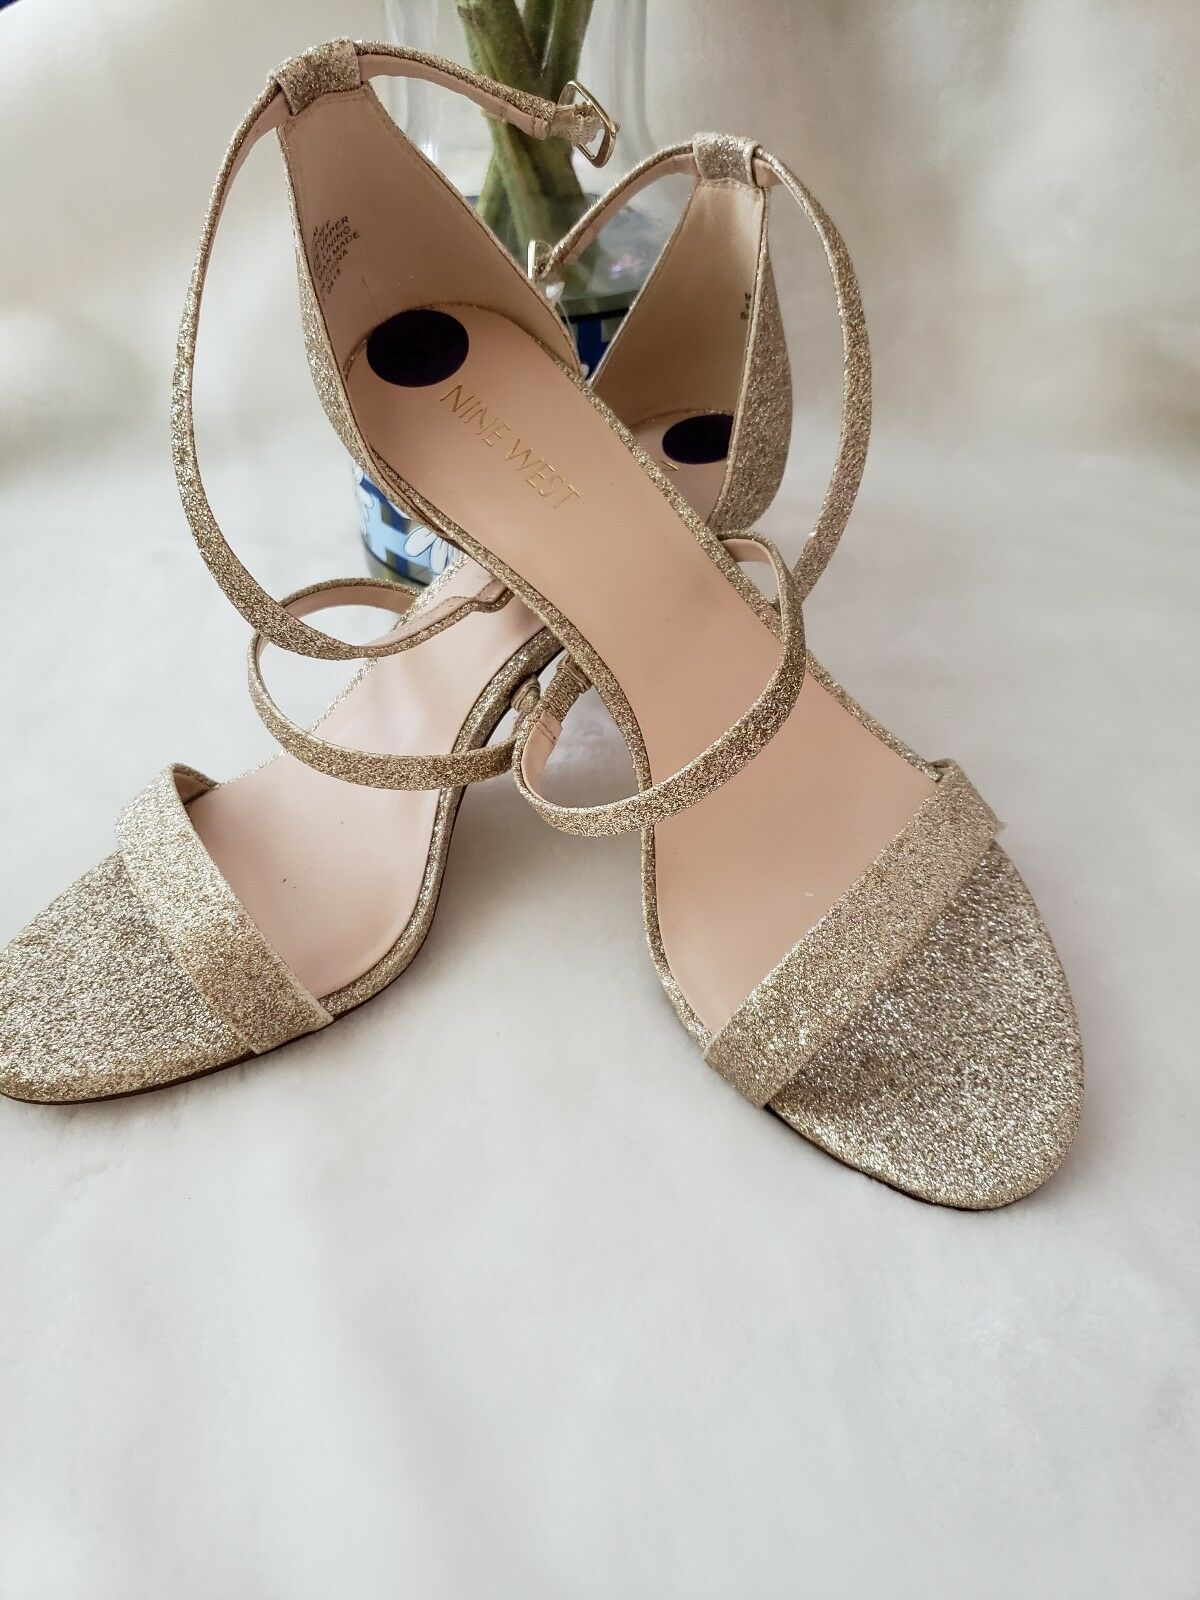 Nine West or Shimmer Talons Hauts Sandales NW 7 itsoff New SZ8.5 M